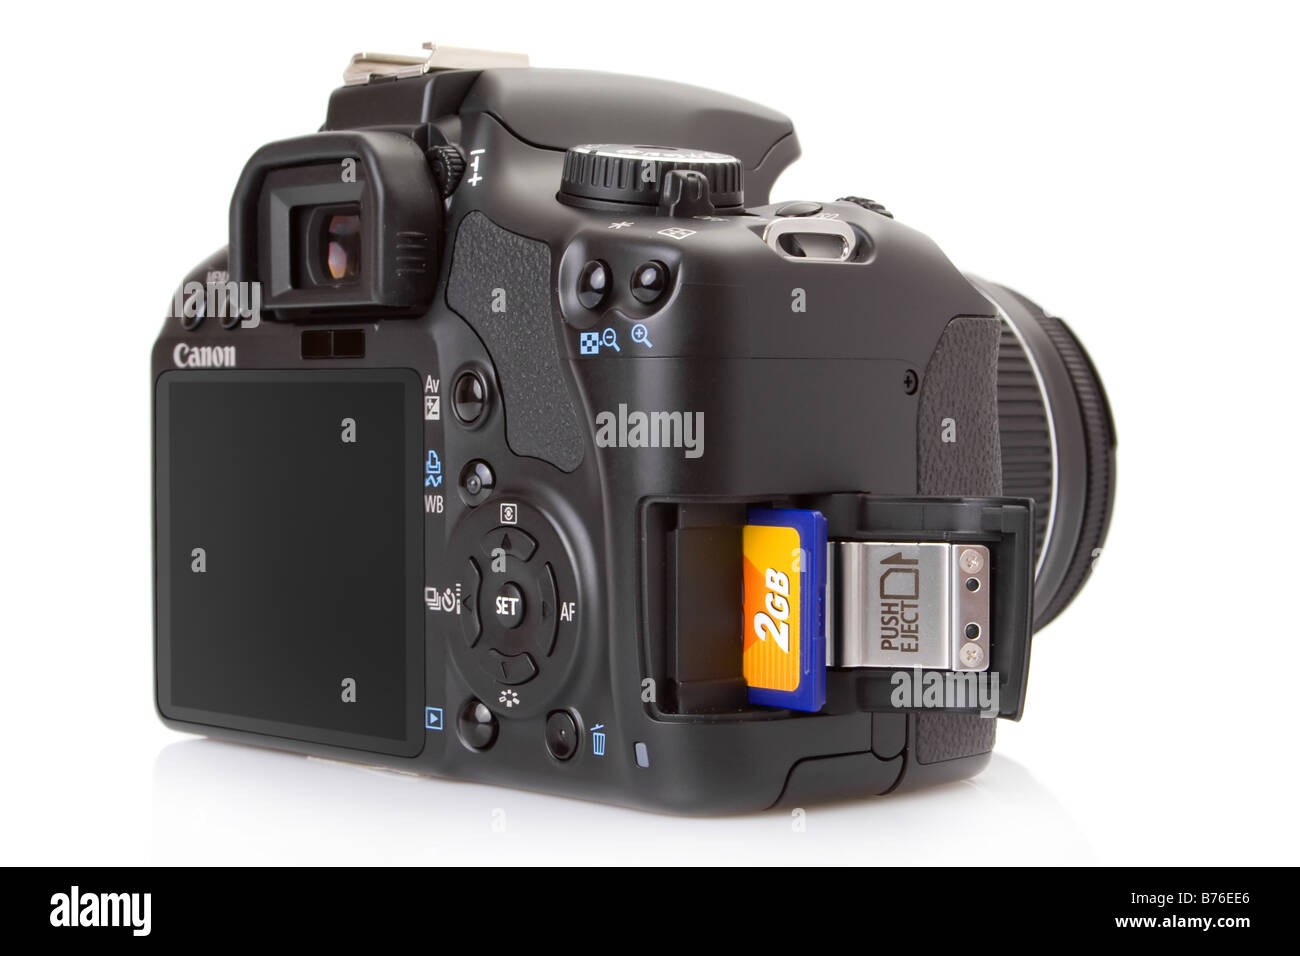 Canon EOS 450D (Rebel XSi), 12 megapixel digital slr, with a half inserted sd card - Stock Image